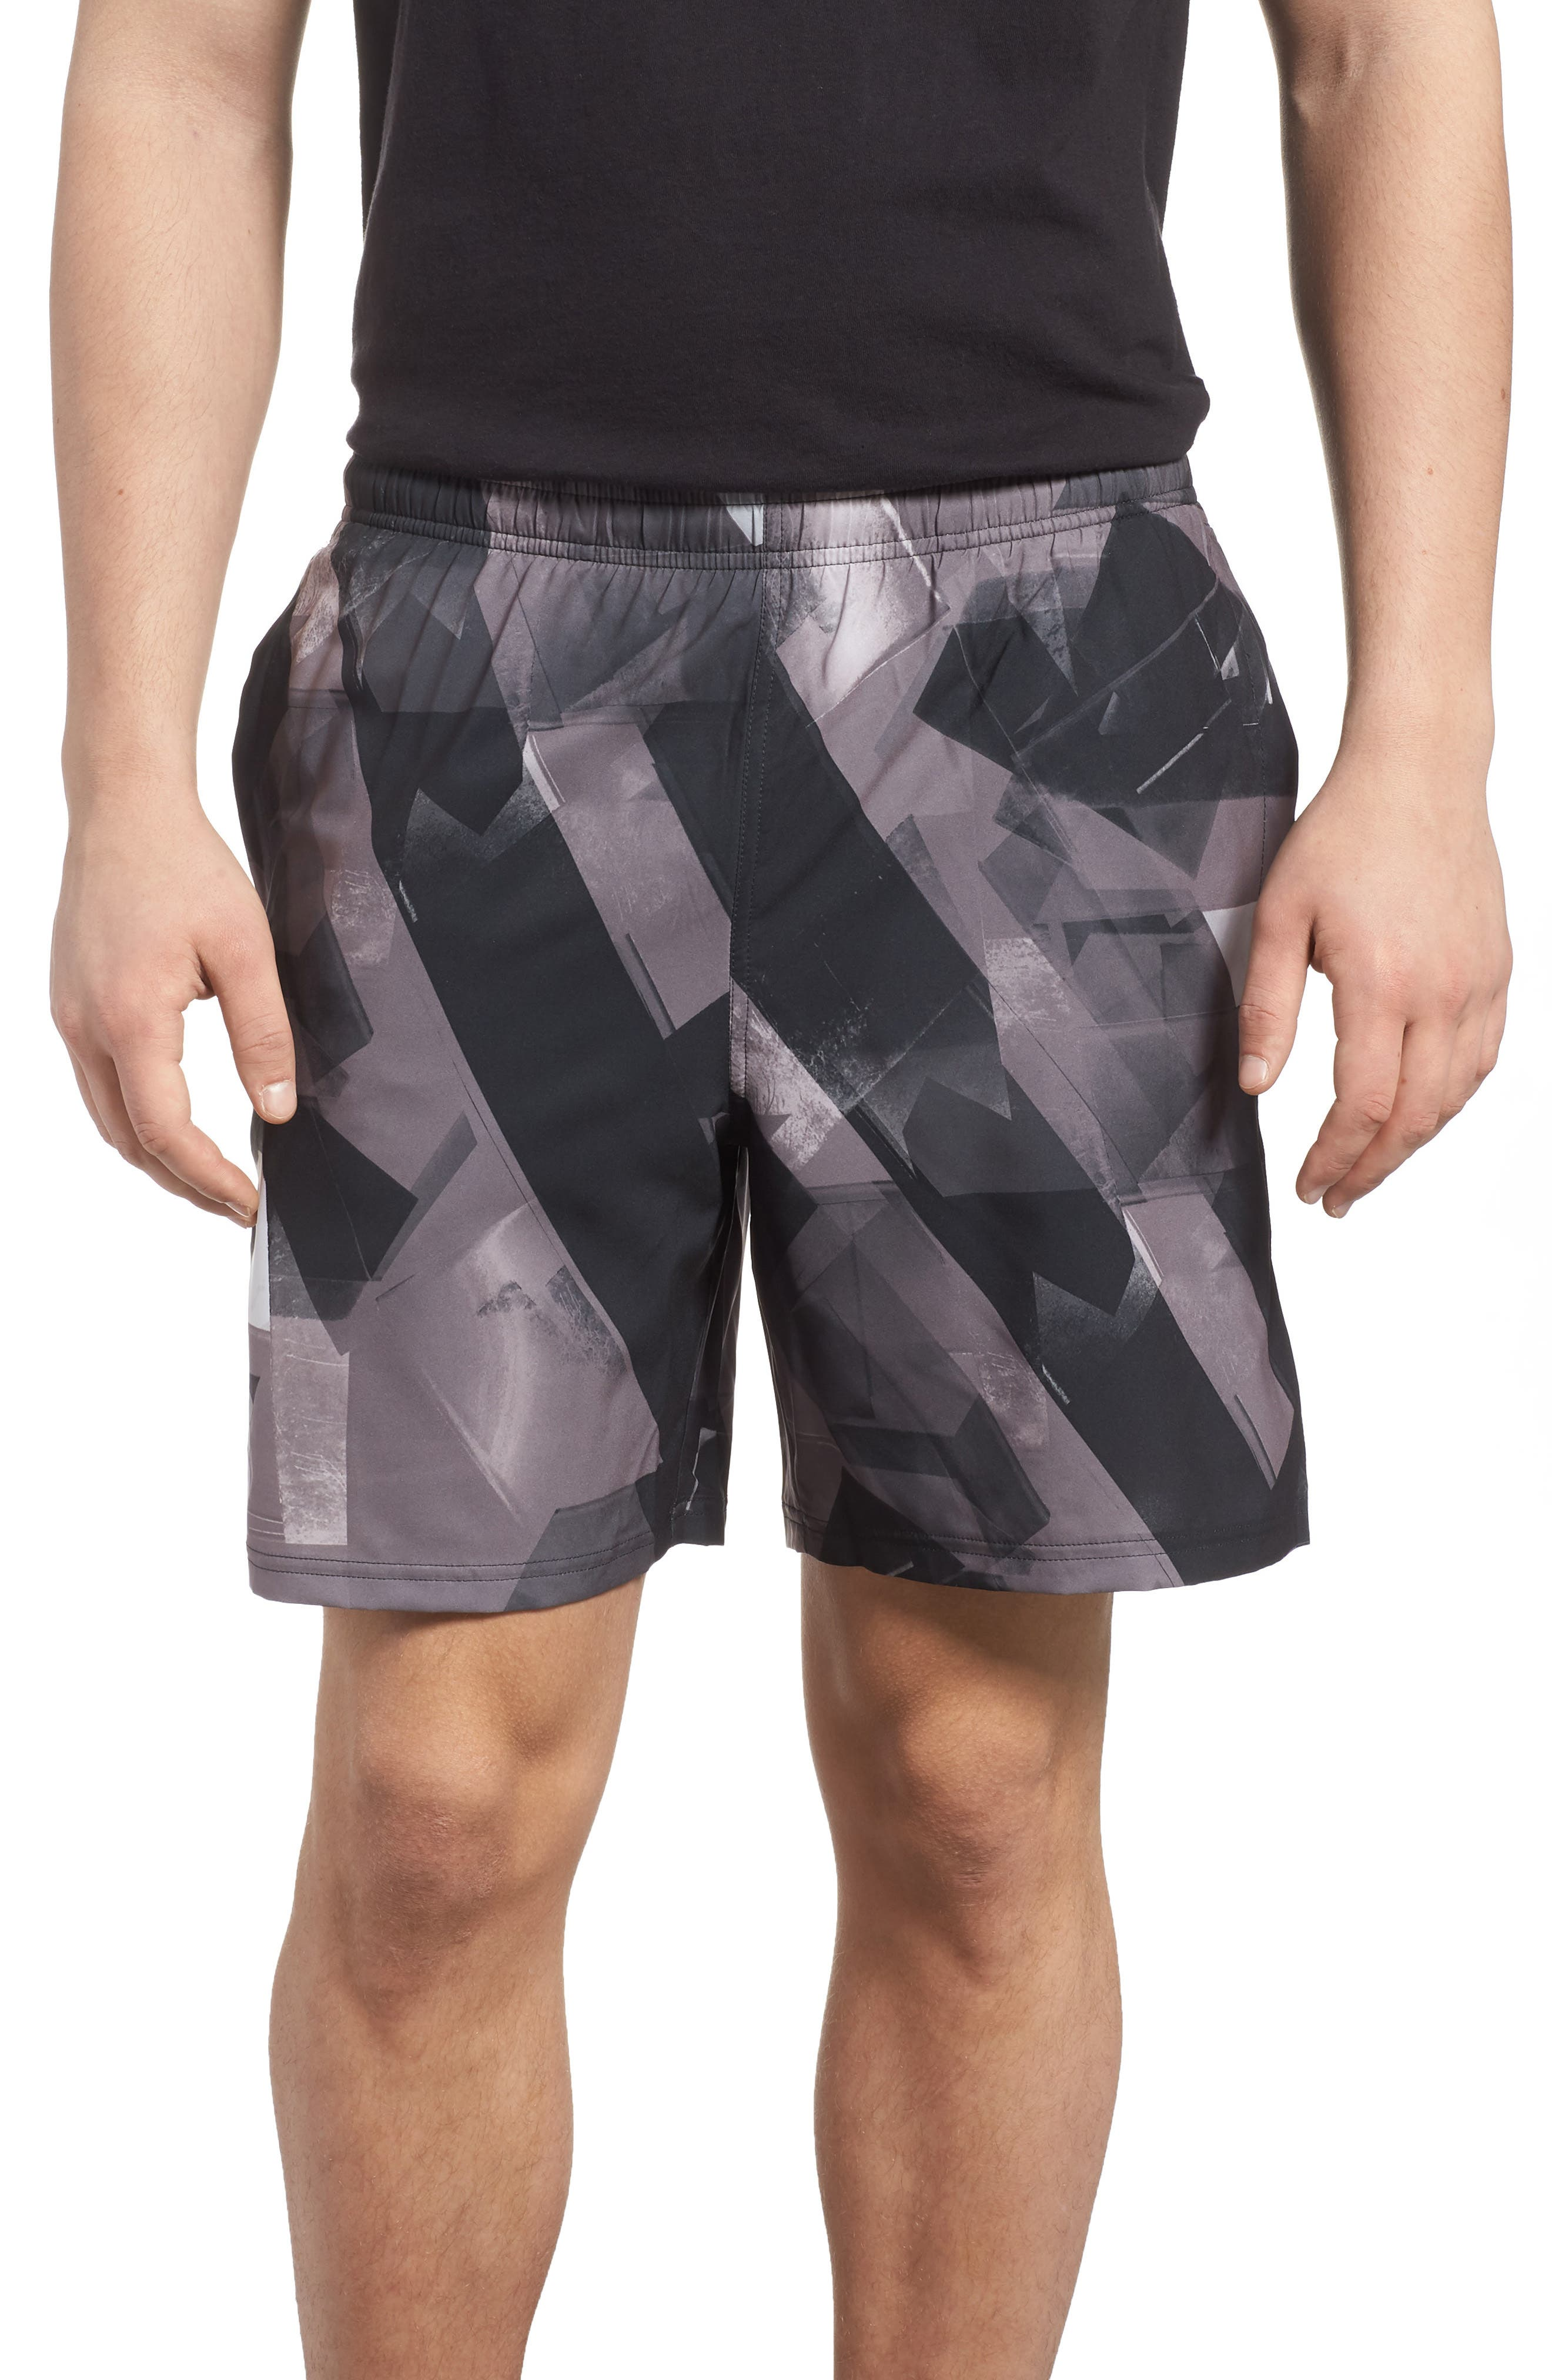 Launch Running Shorts,                         Main,                         color, Anthracite/ Black/ Reflective